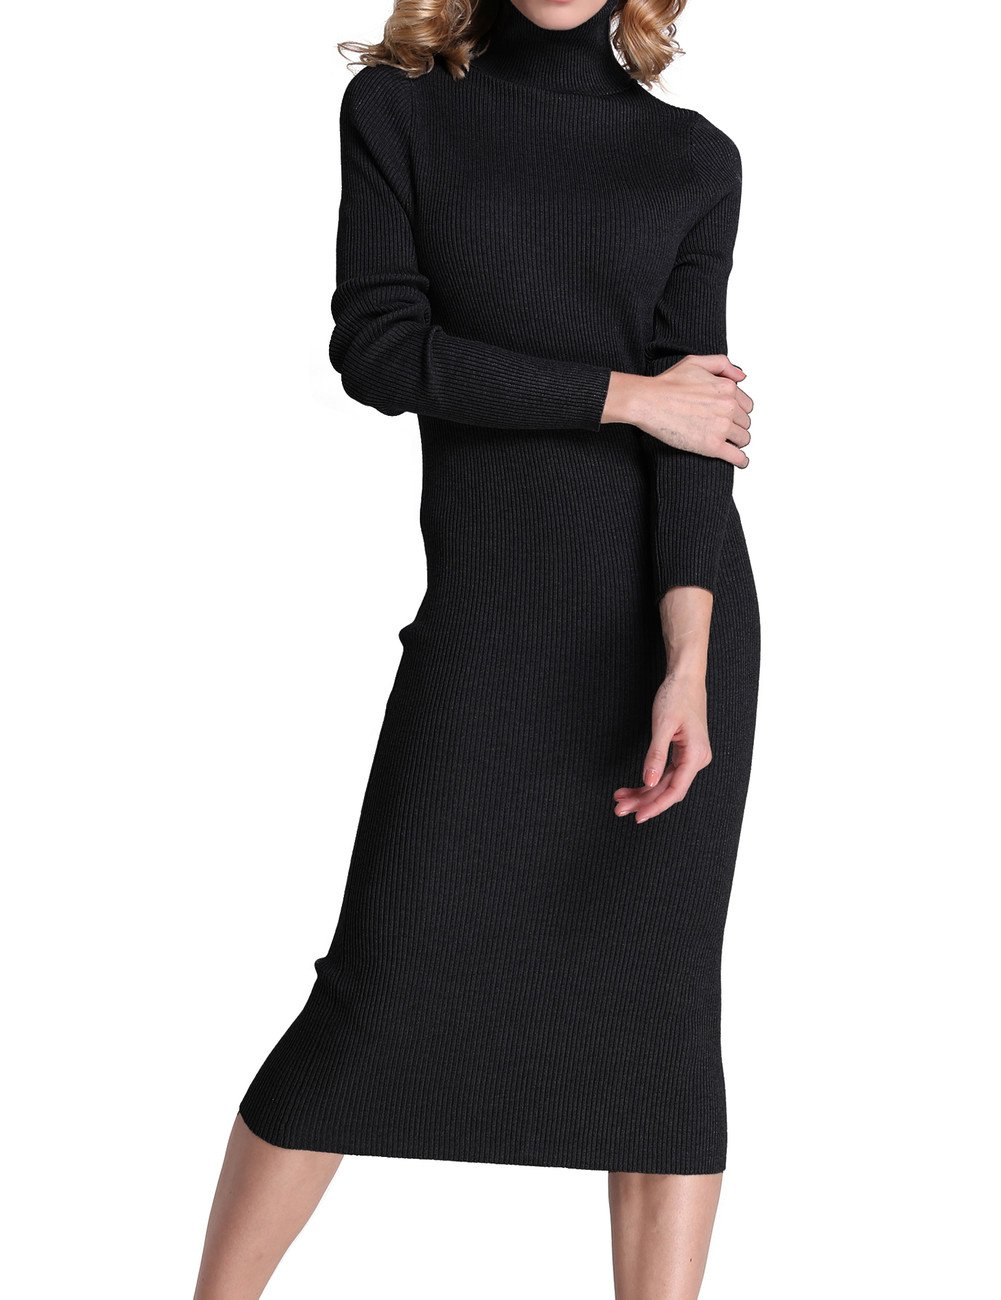 Sweater Dress - Women's Slim Fit Cable Knit Long Sleeve Sweater Dress